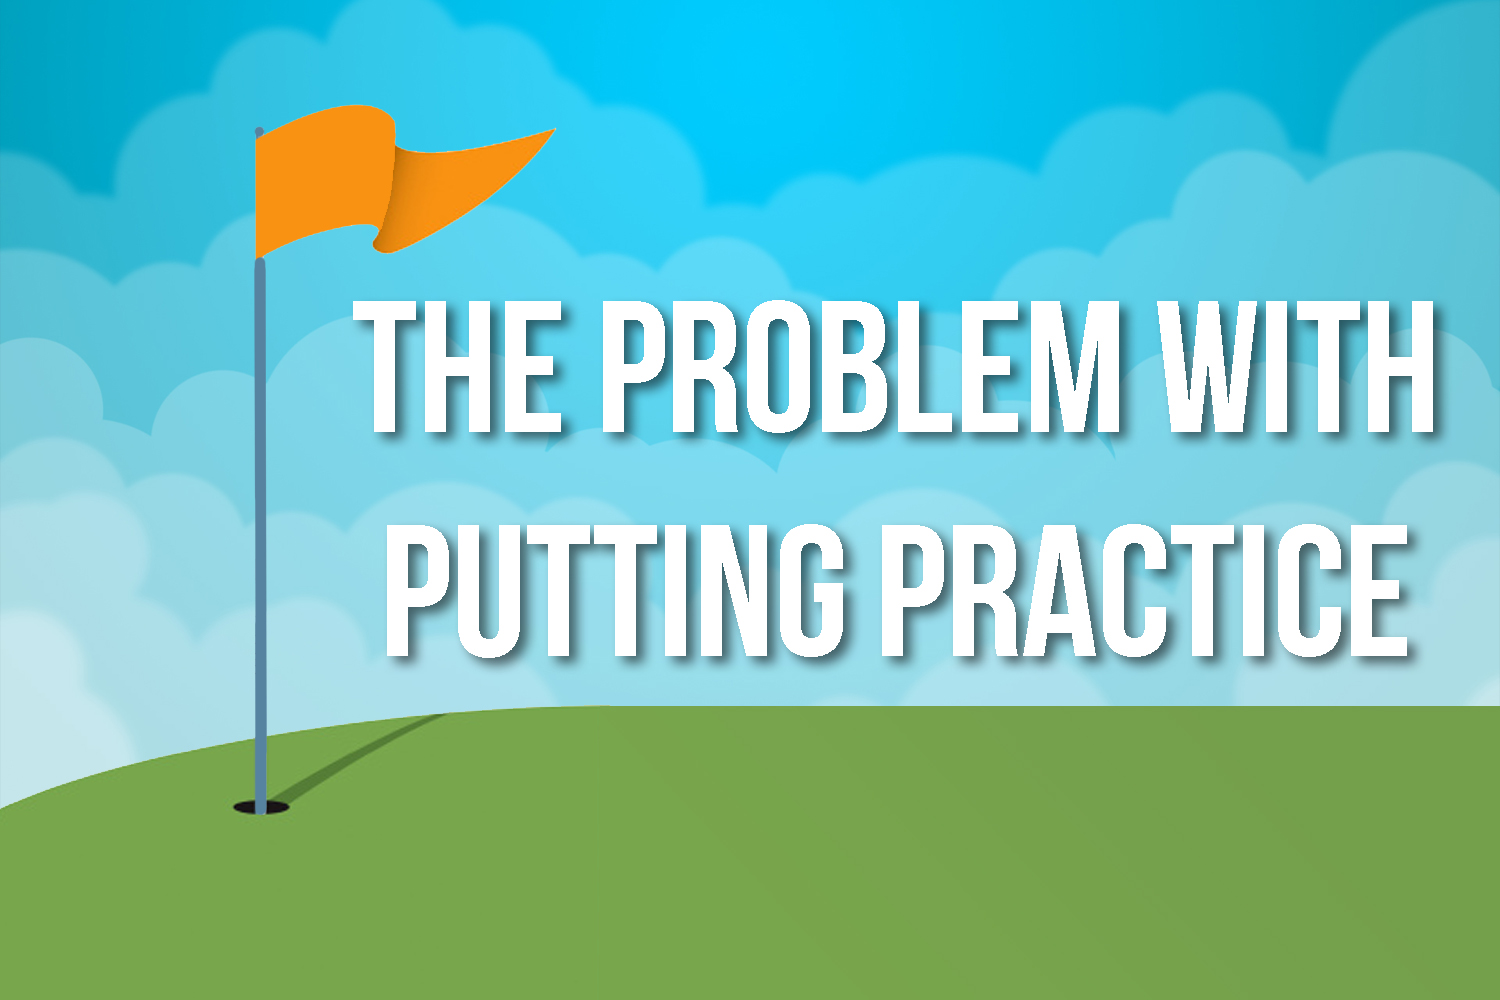 The Problem with Putting Practice